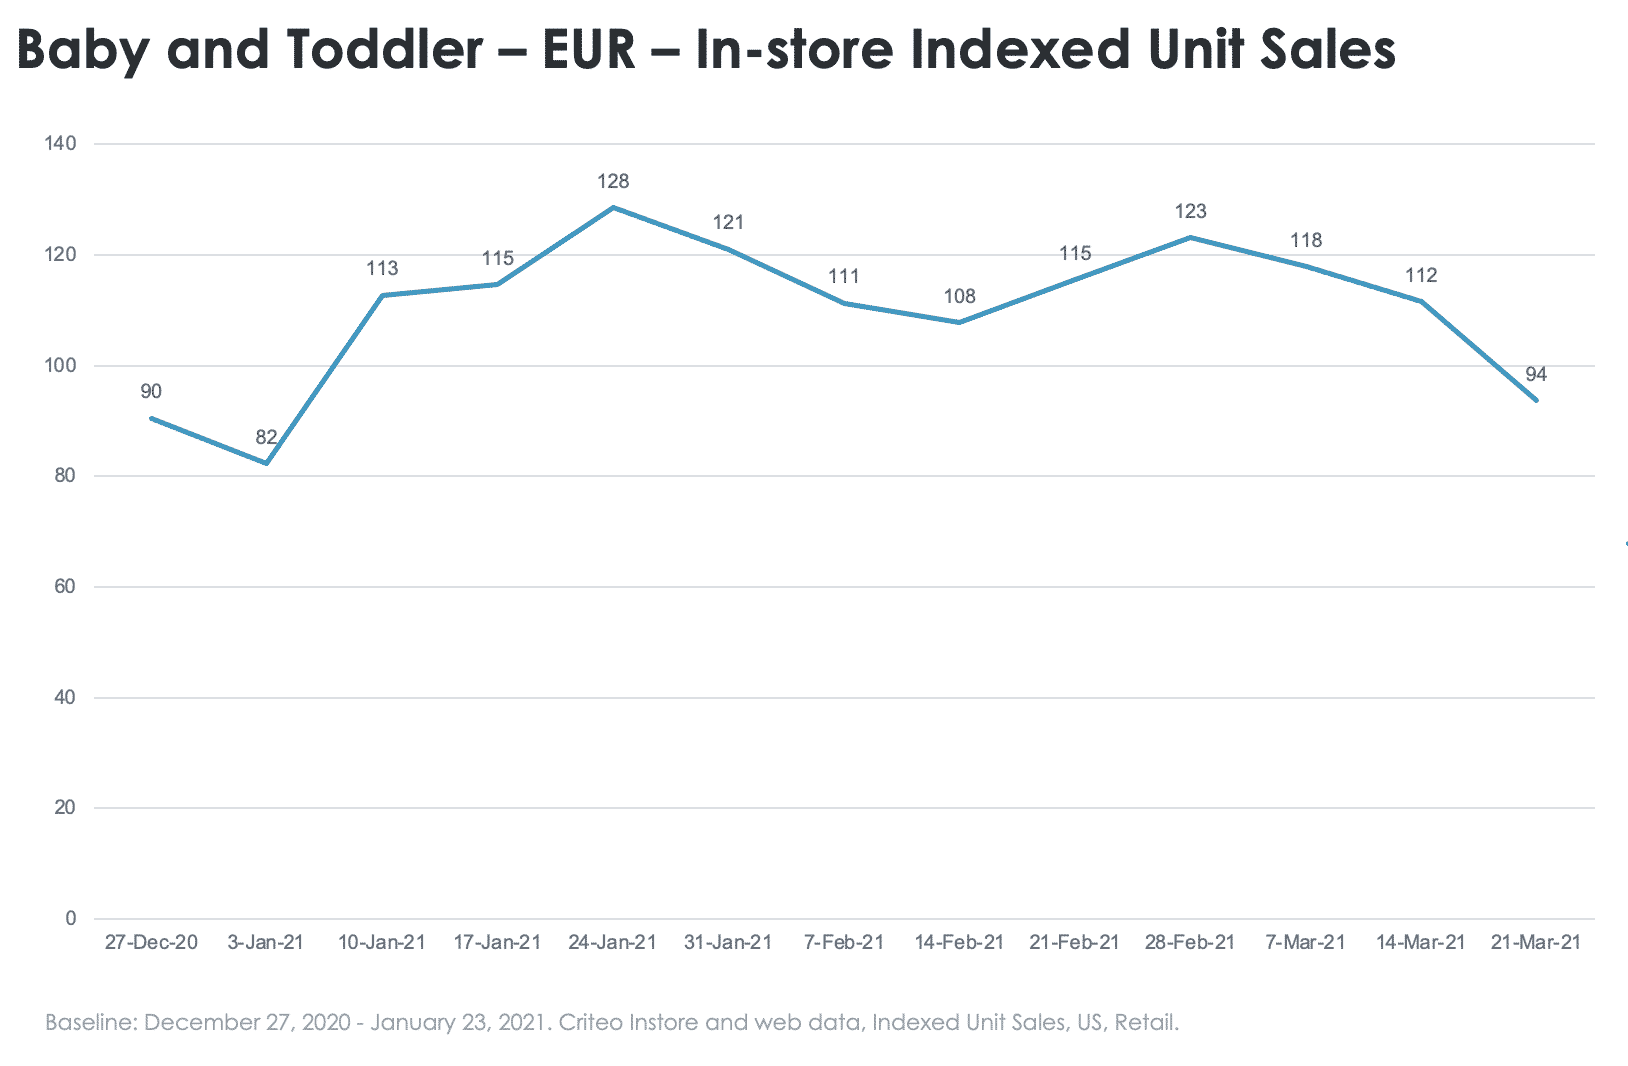 Baby and toddler in-store sales europe